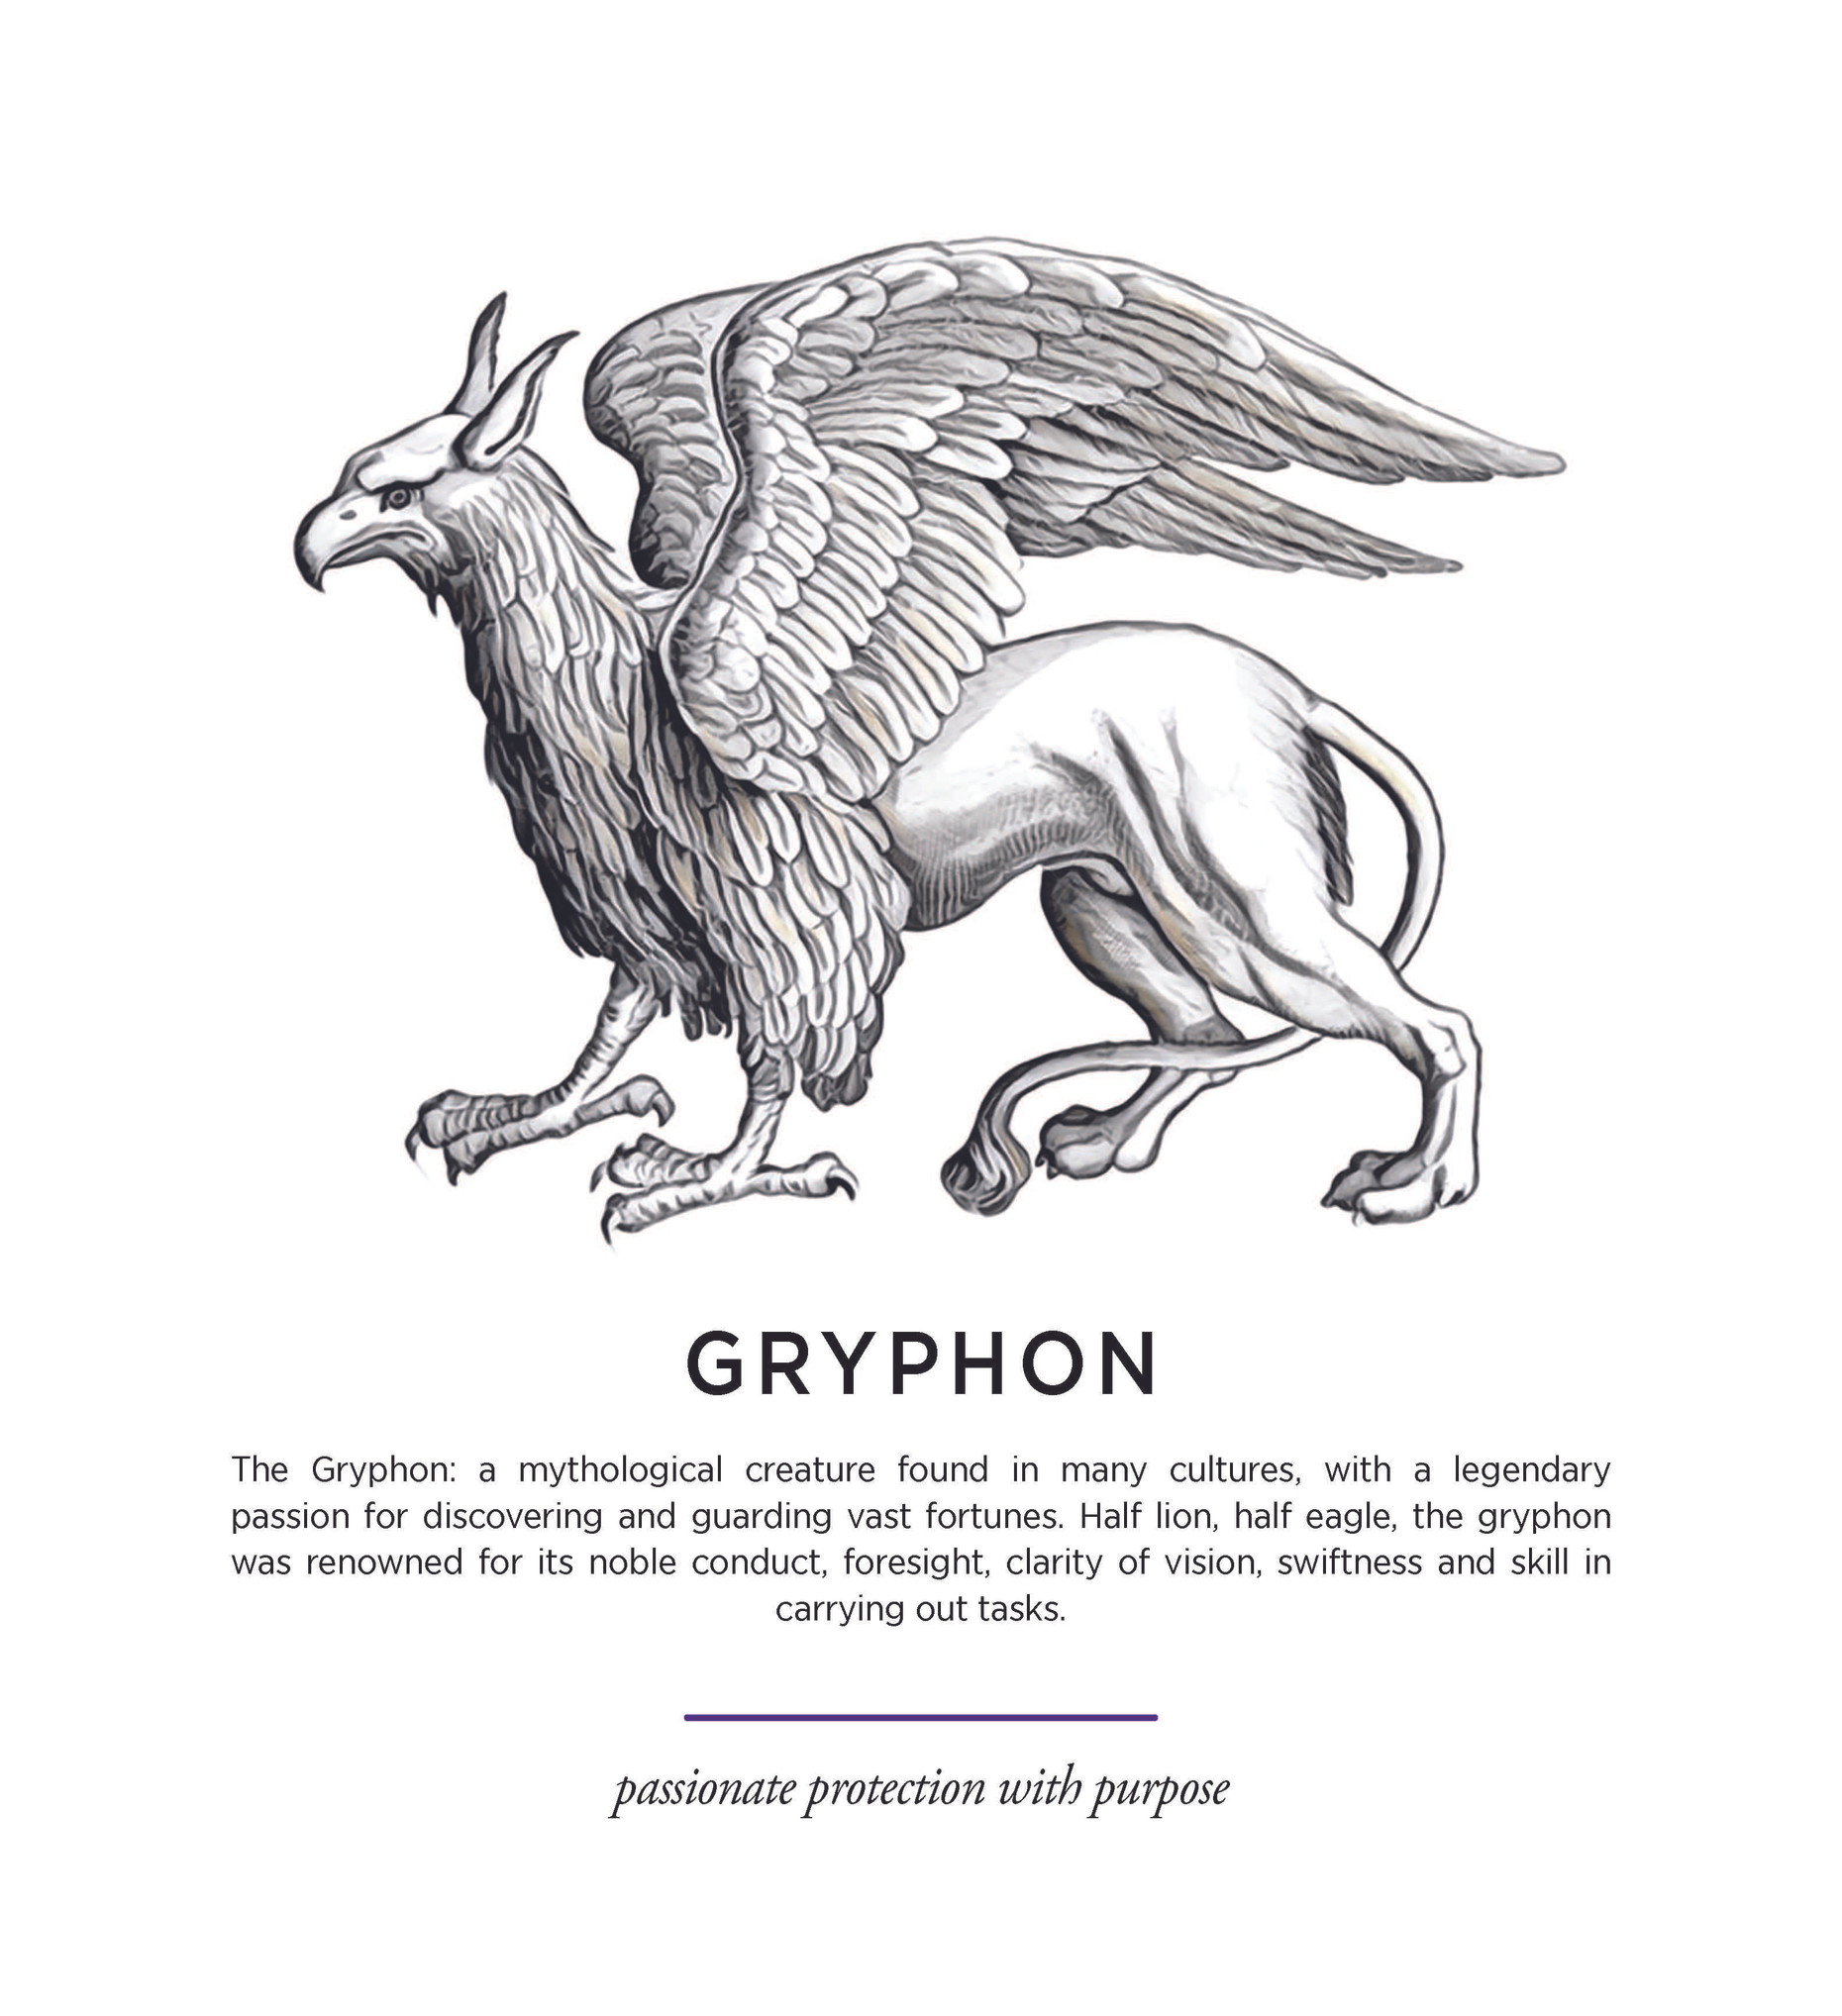 Gryphon_Miscelany-01_Gryphon.jpg